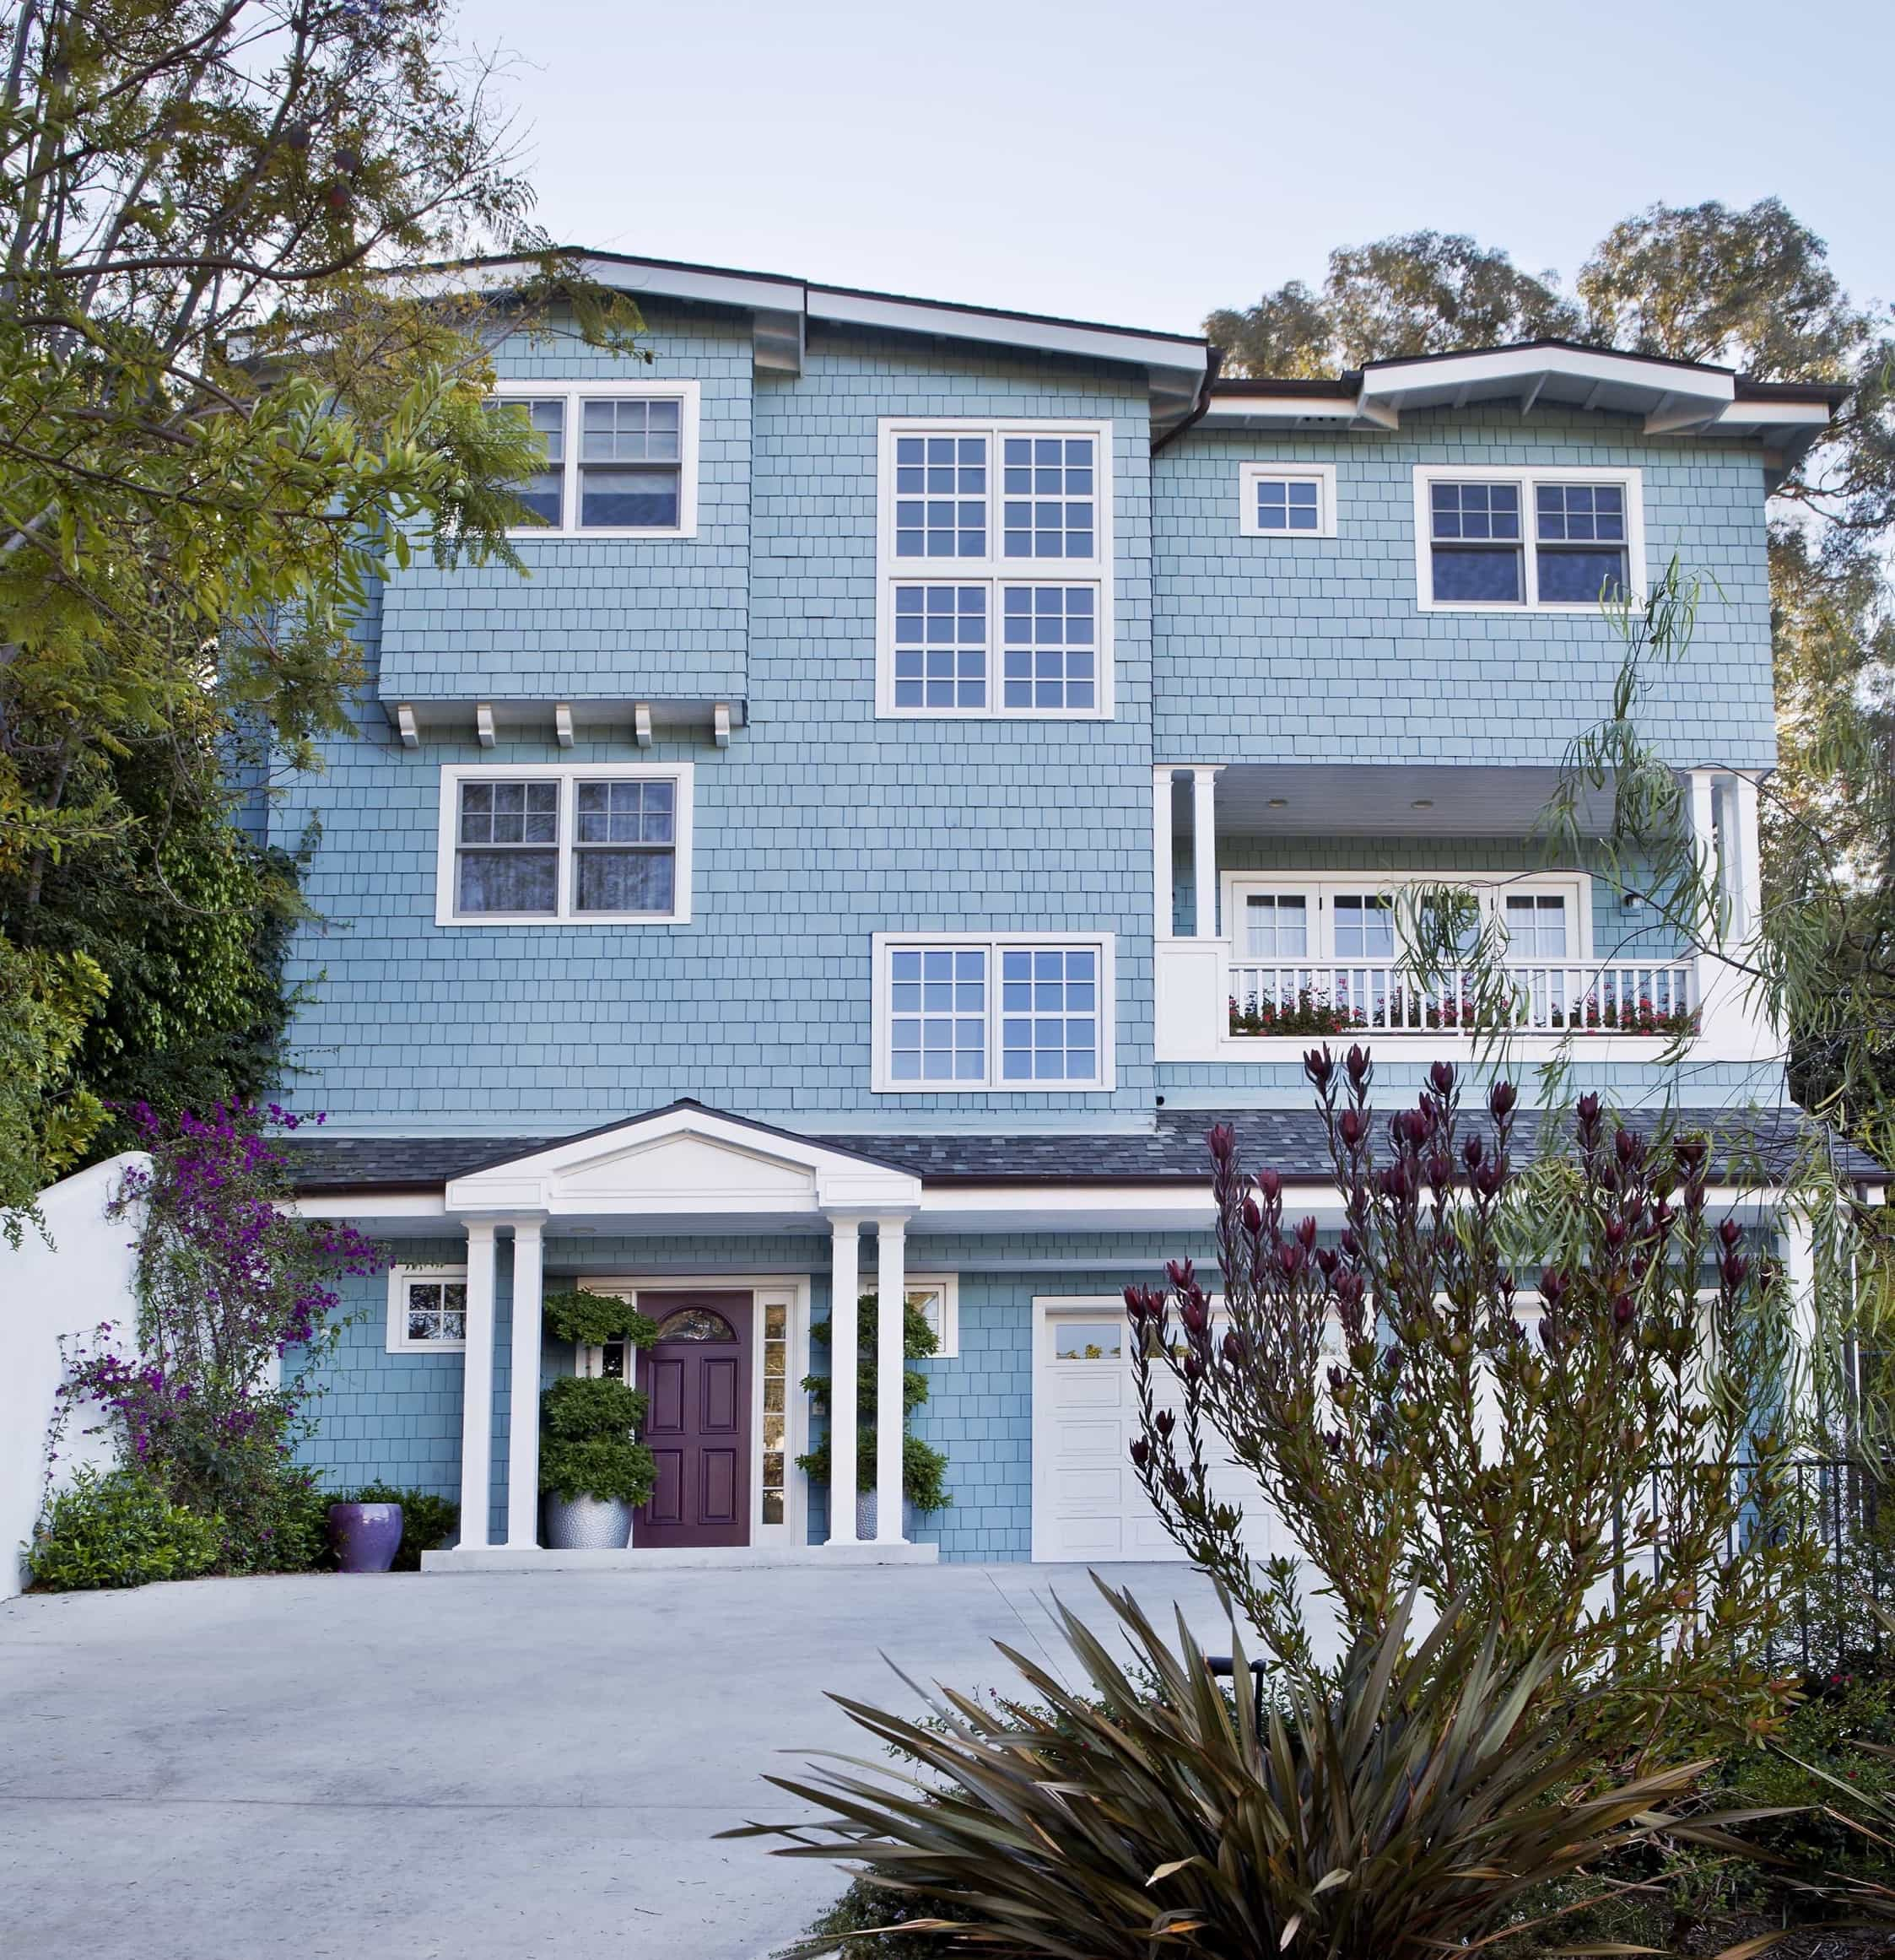 Featured Image of Exterior Of Brentwood Home With Baby Blue Wood Siding